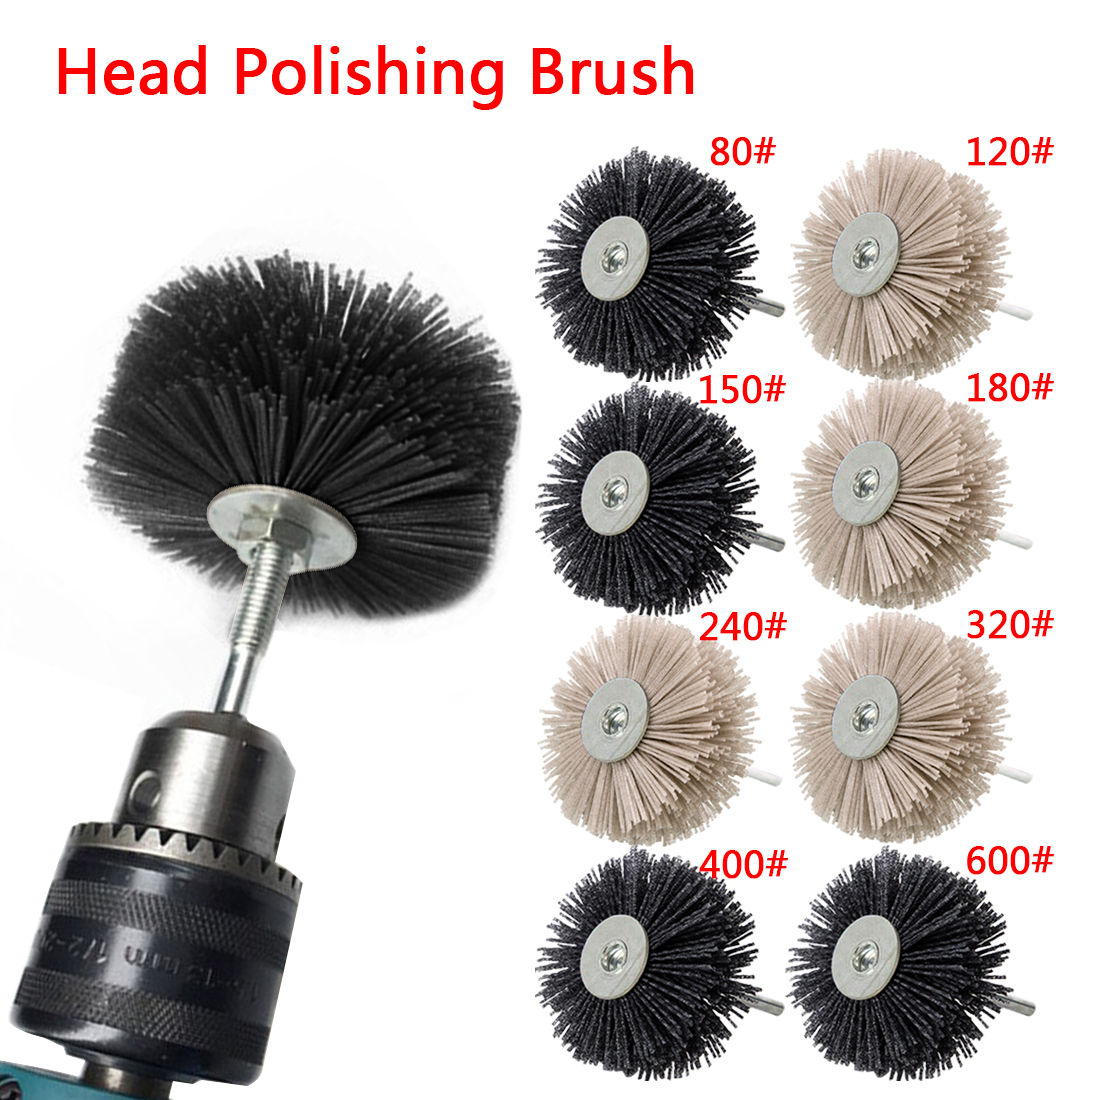 Abrasive Wire Grinding Flower Head Abrasive Nylon Wheel Brush Woodwork Polishing Brush Bench Grinder For Wood Furniture Mahogany